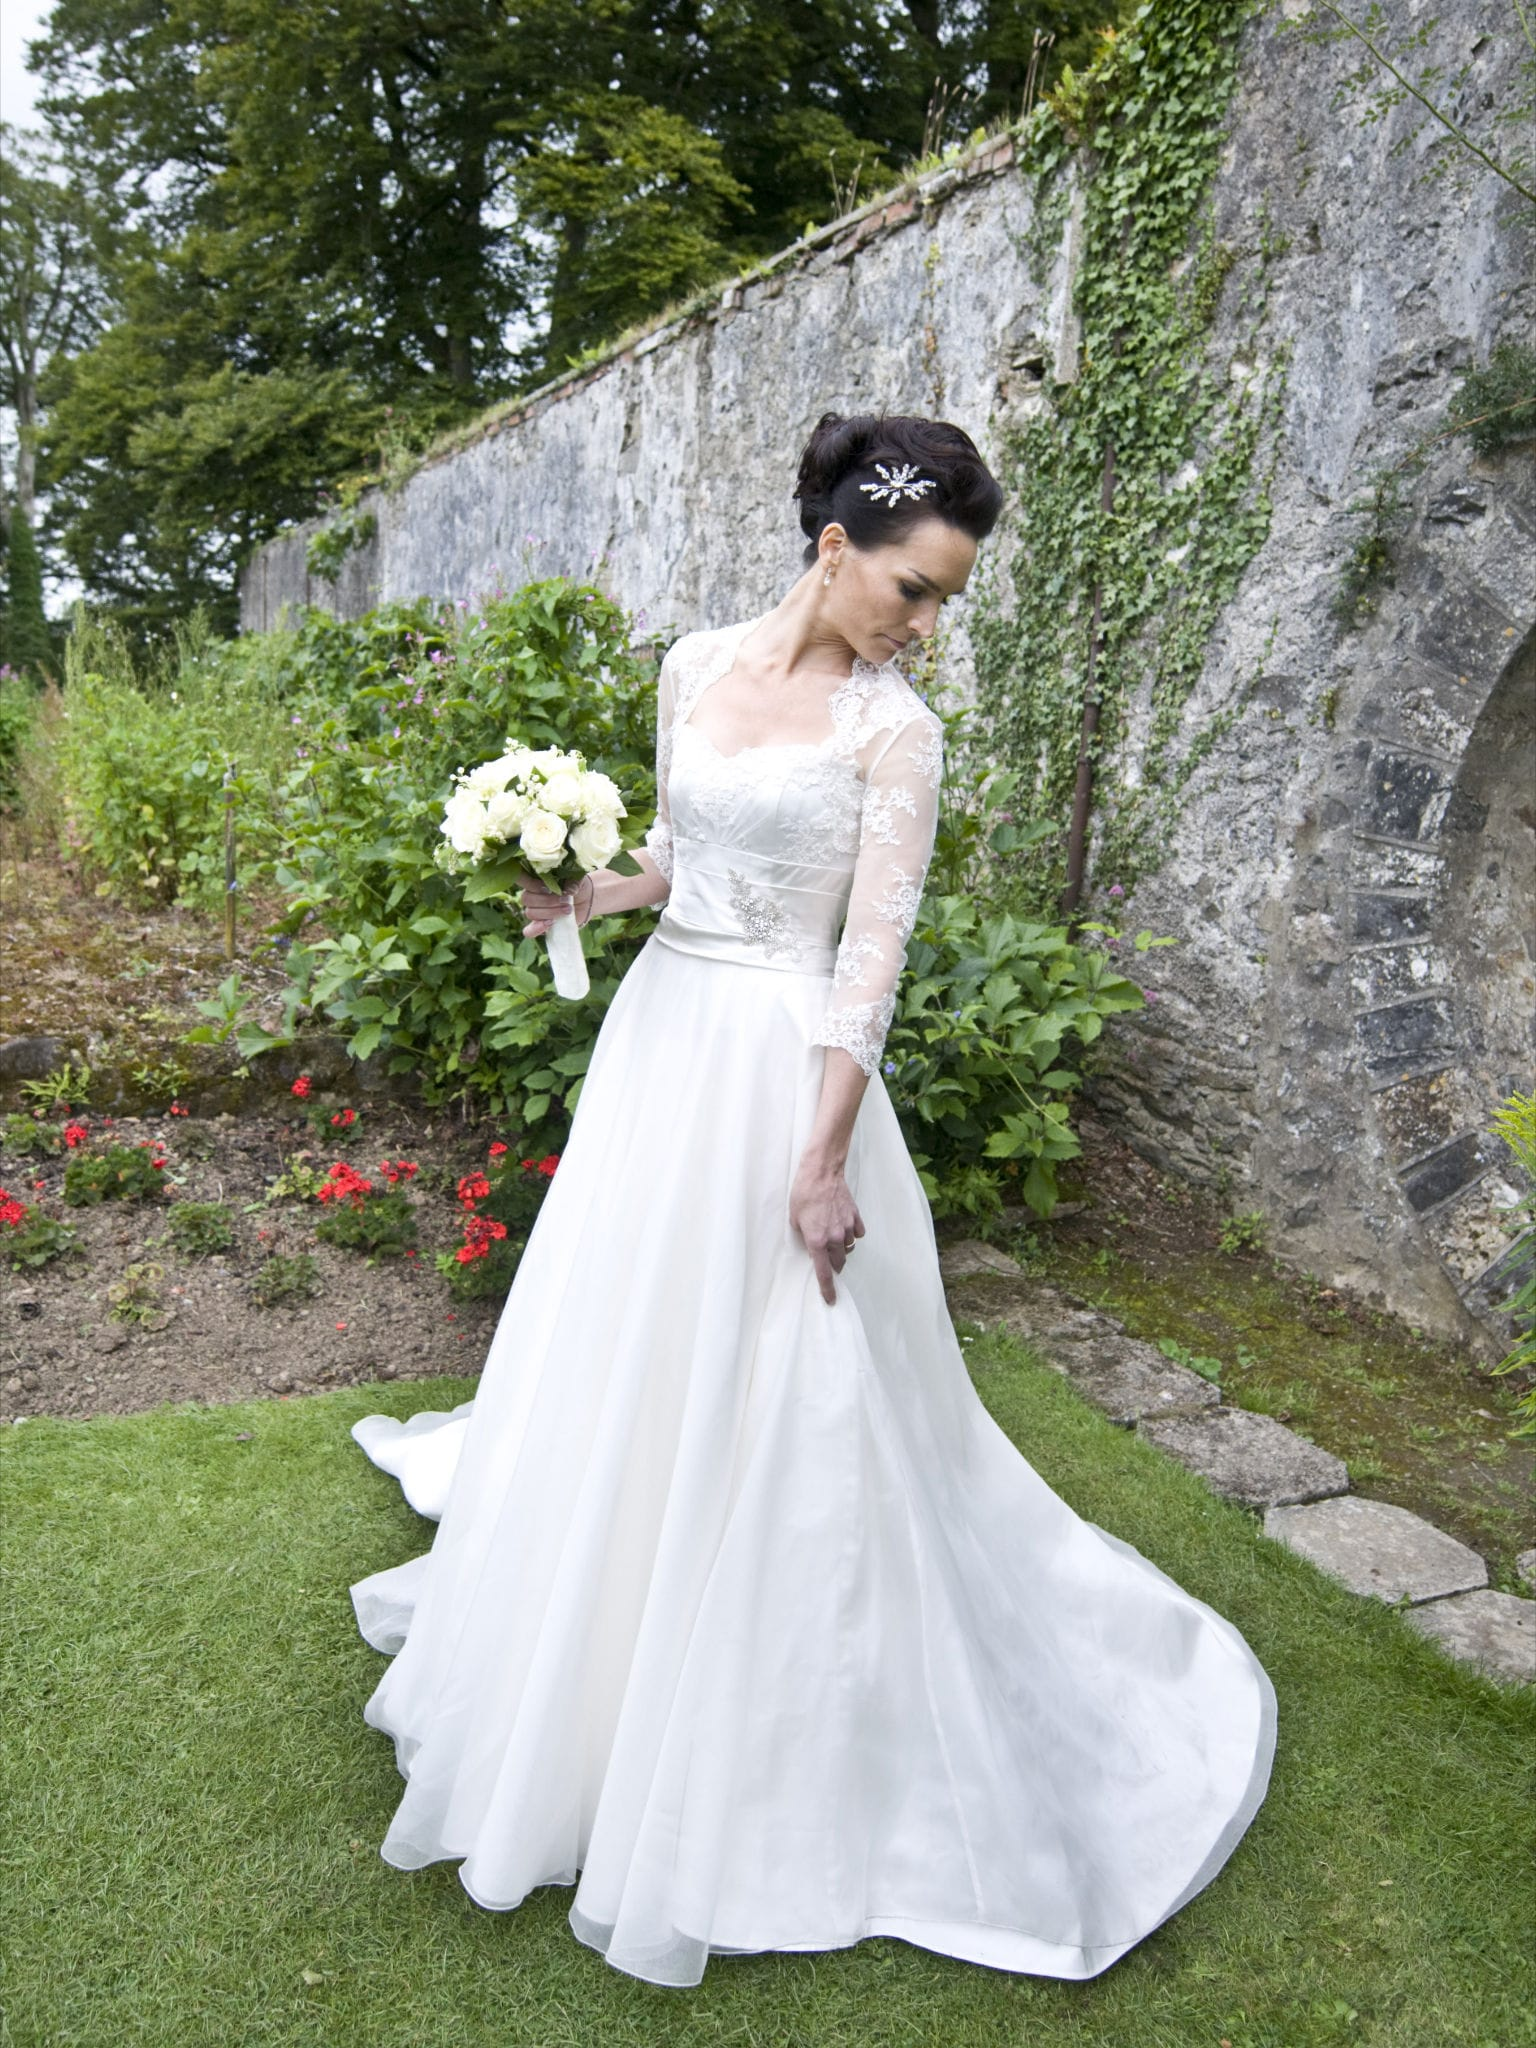 Couture wedding dress sell my wedding dress online for Sell wedding dress online